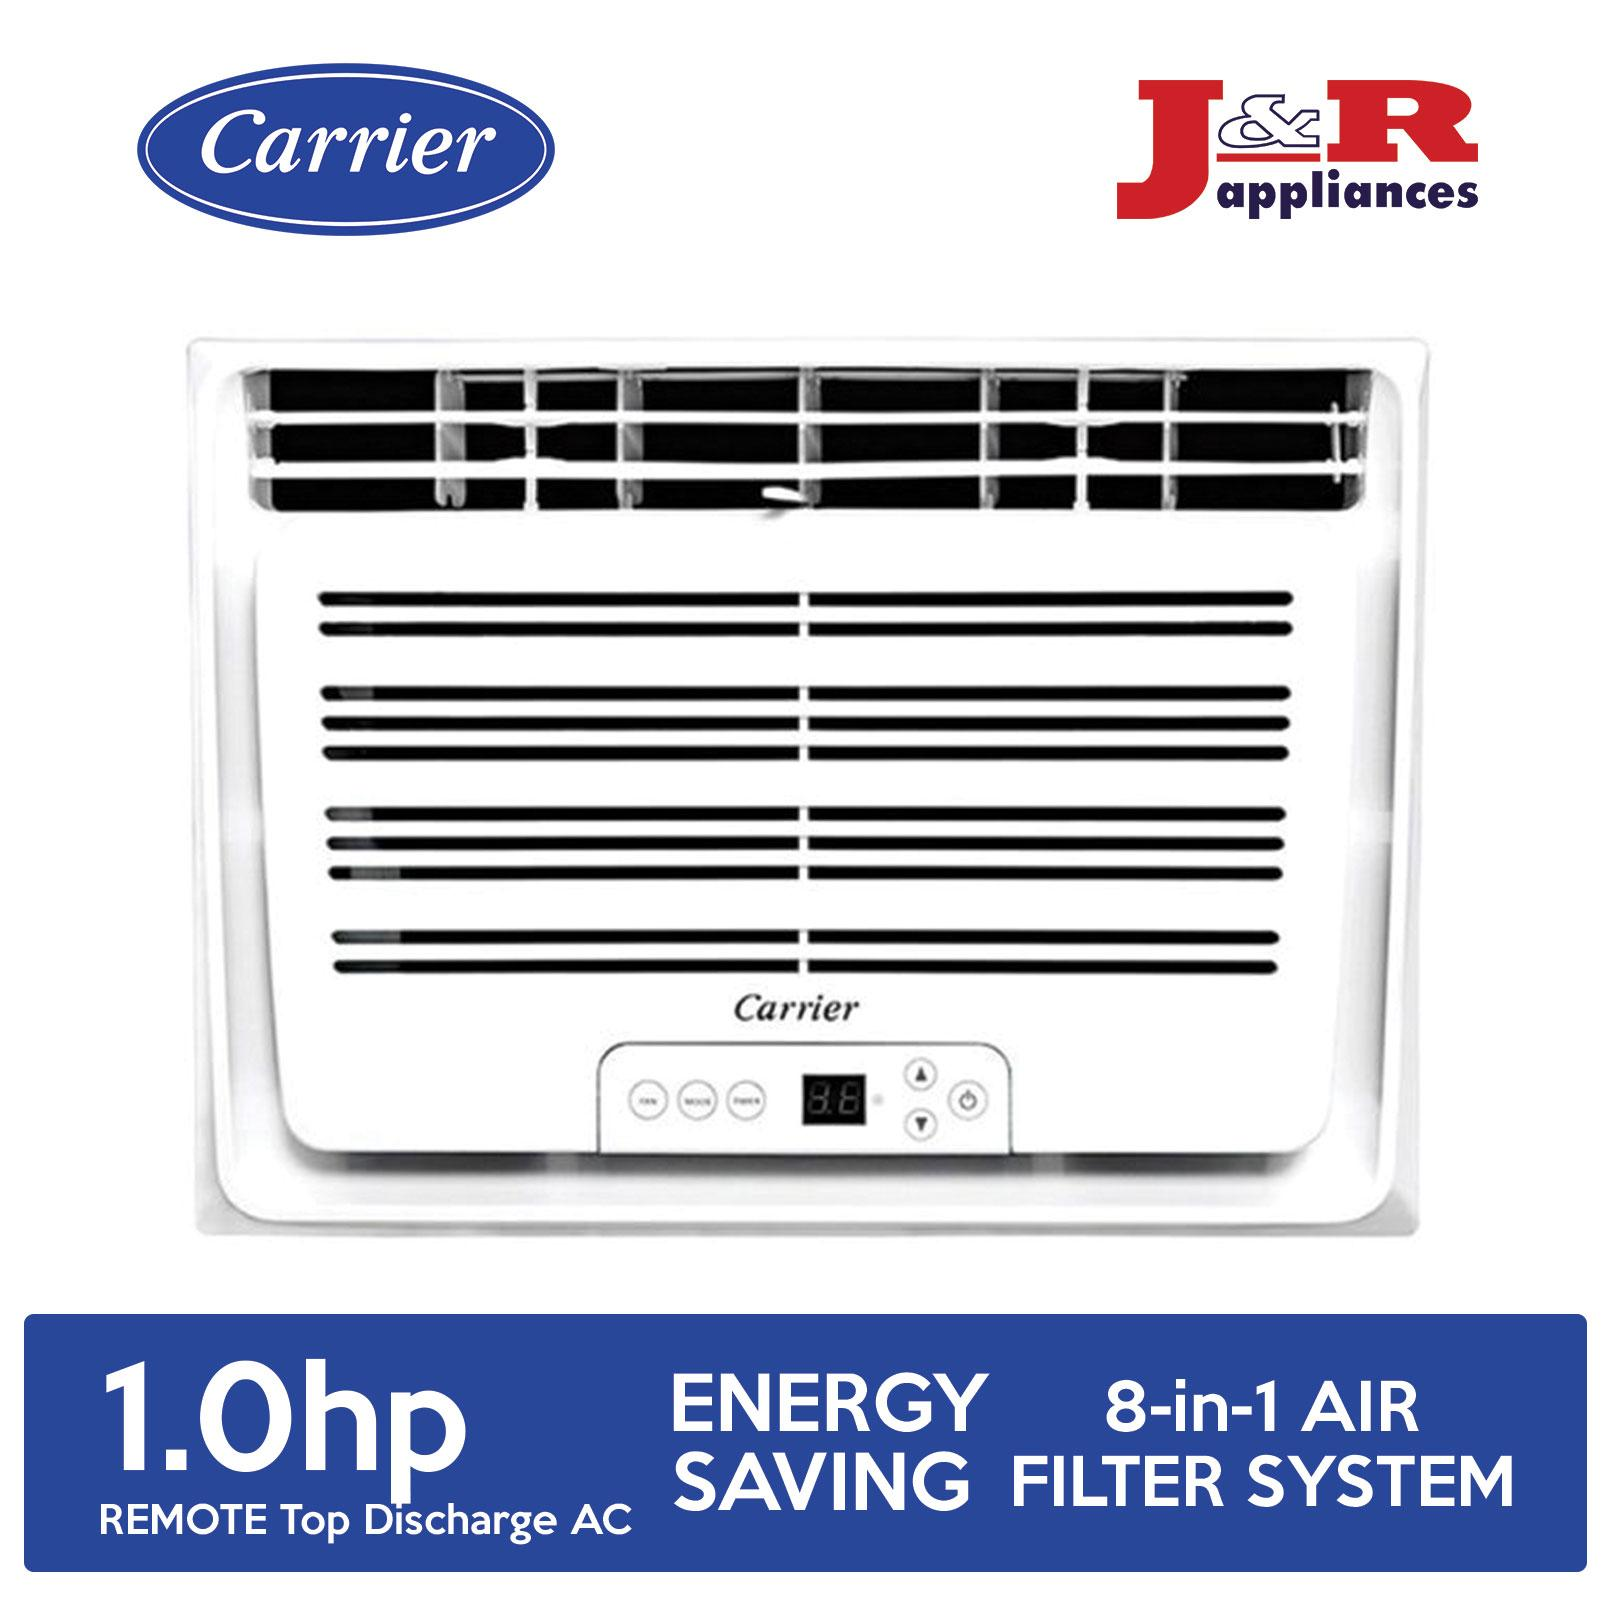 Carrier Air Conditioner Operating Instructions Sante Blog